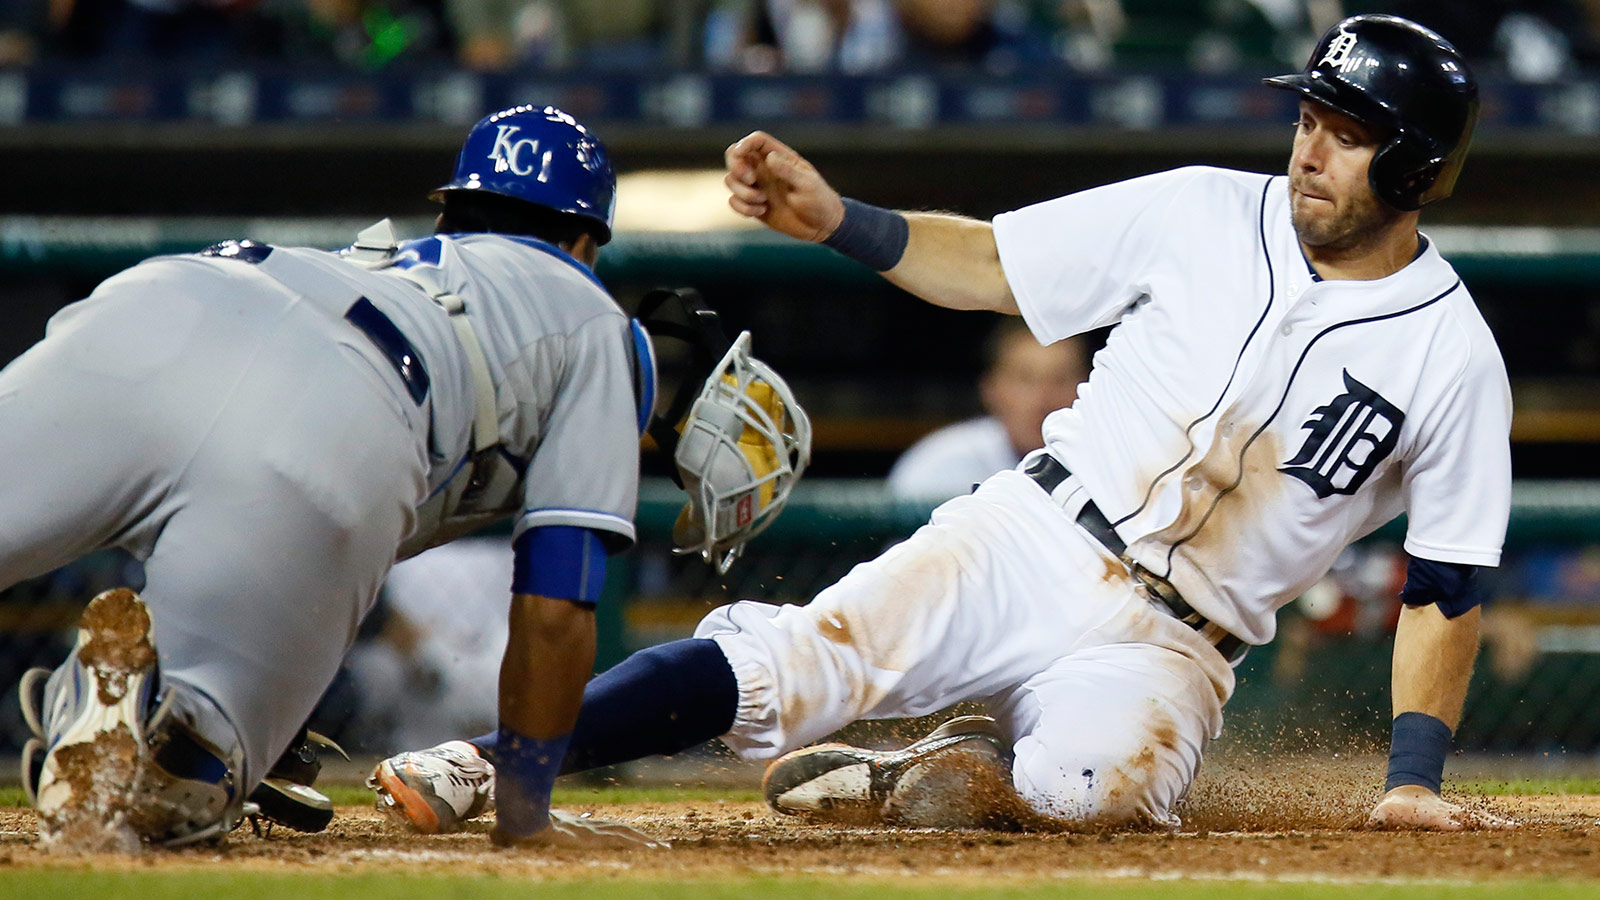 Royals again fall to Tigers in extra innings, this time 6-5 in 11